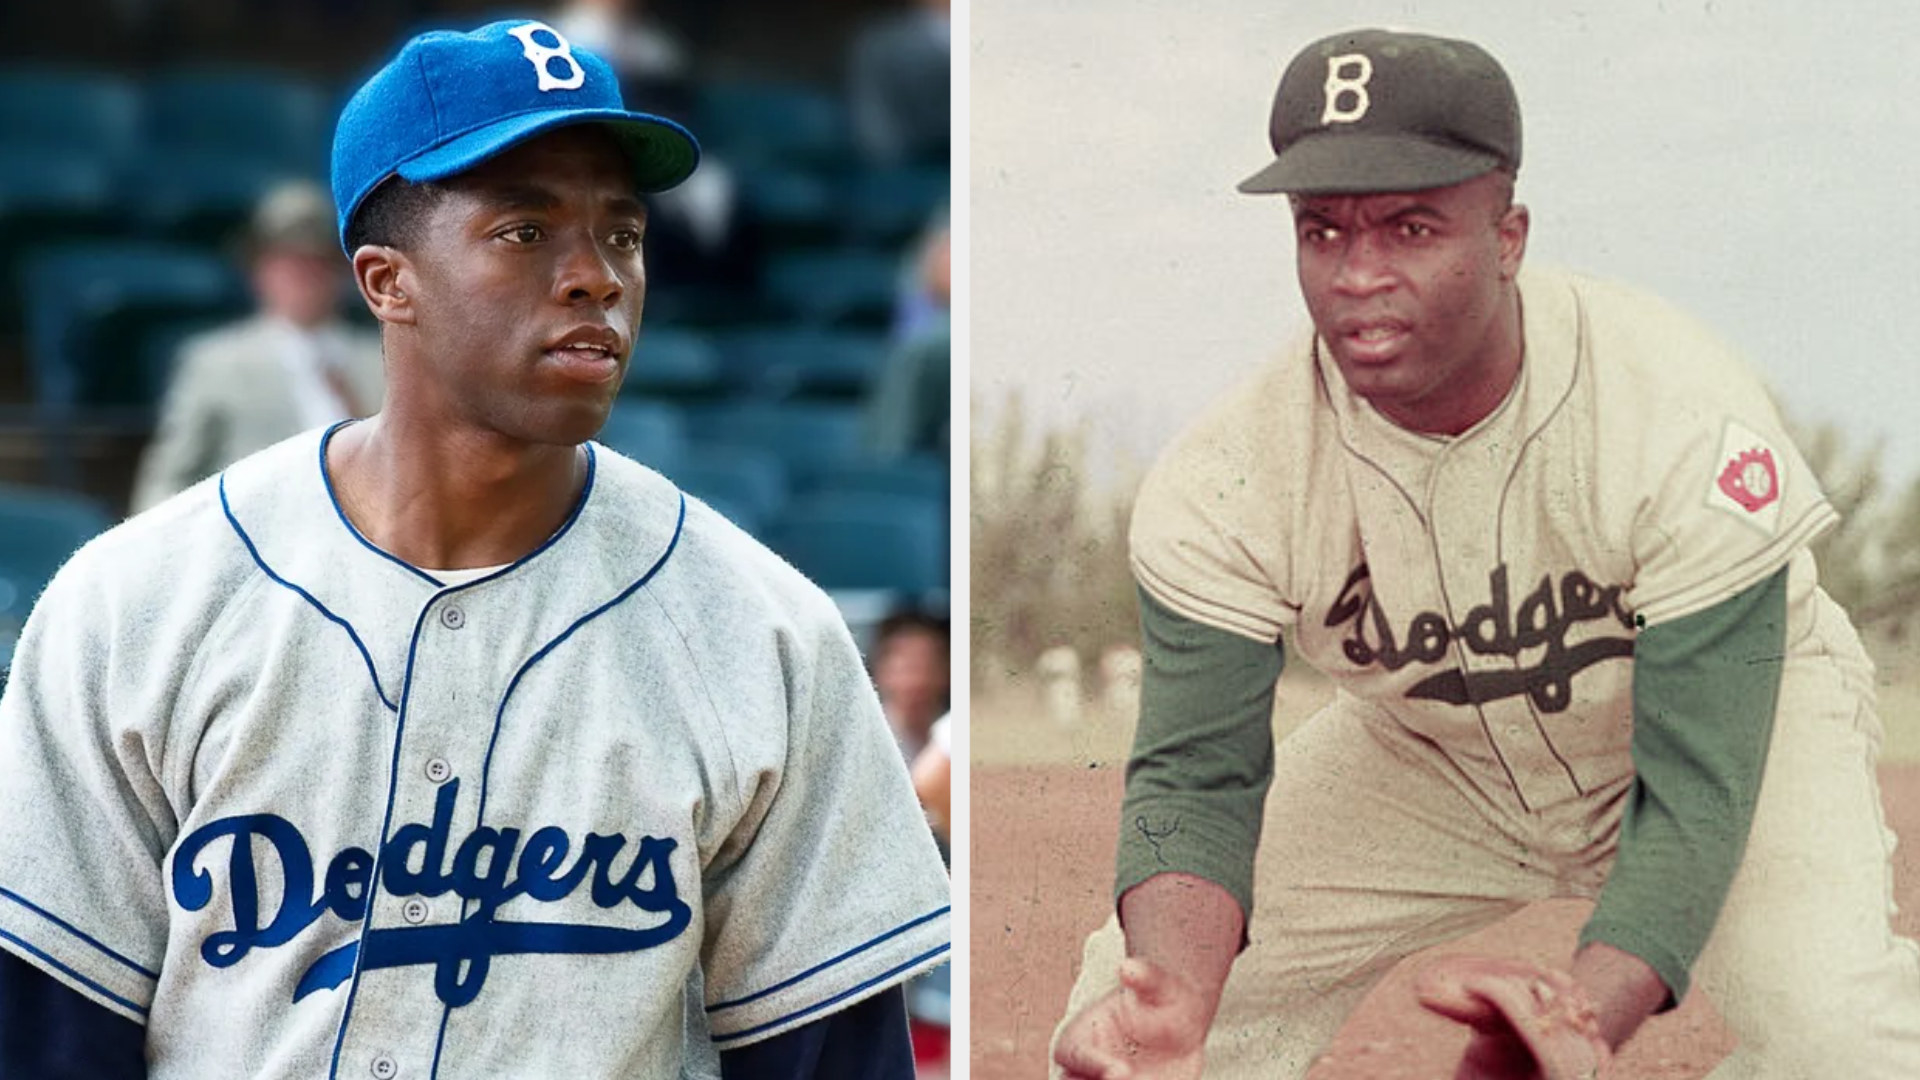 Chadwick Boseman as Jackie Robinson wearing a Brooklyn Dodgers uniform, staring at someone in a serious manner; Jackie Robinson wearing his Brooklyn Dodgers uniform, kneeling down on the field to catch a ground ball